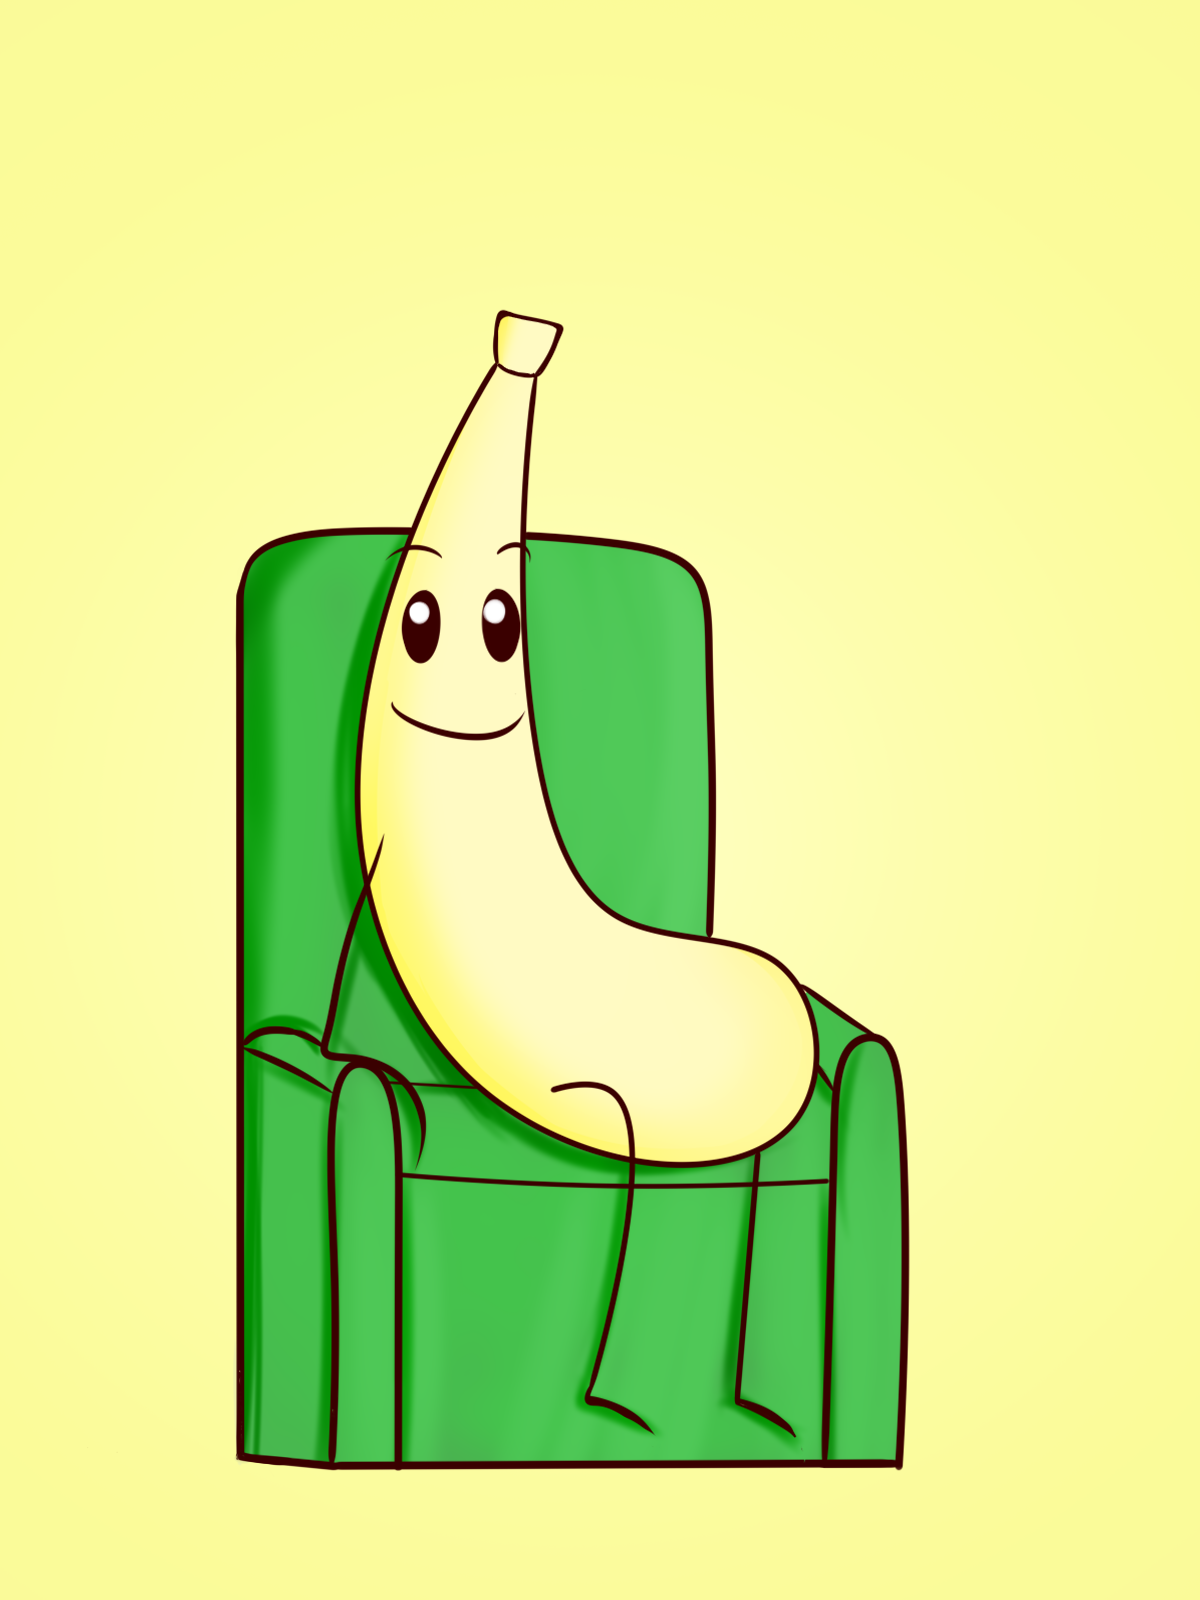 Chilling on a chair